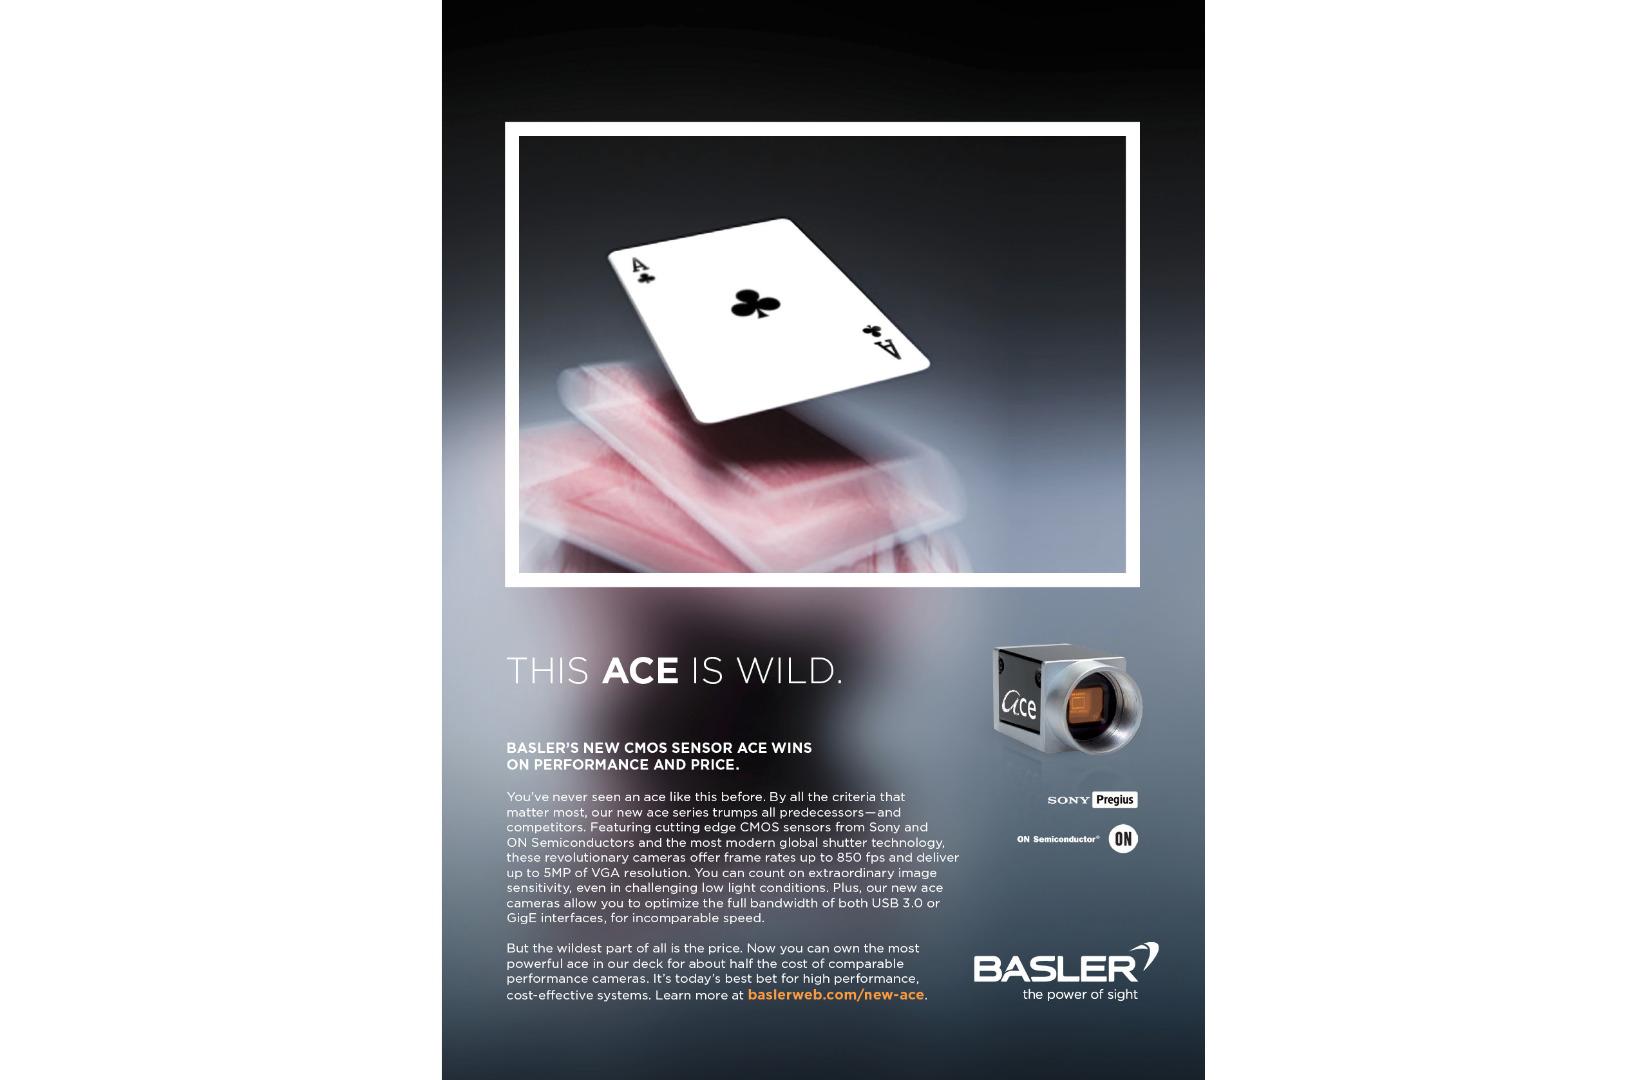 The Ace is Wild